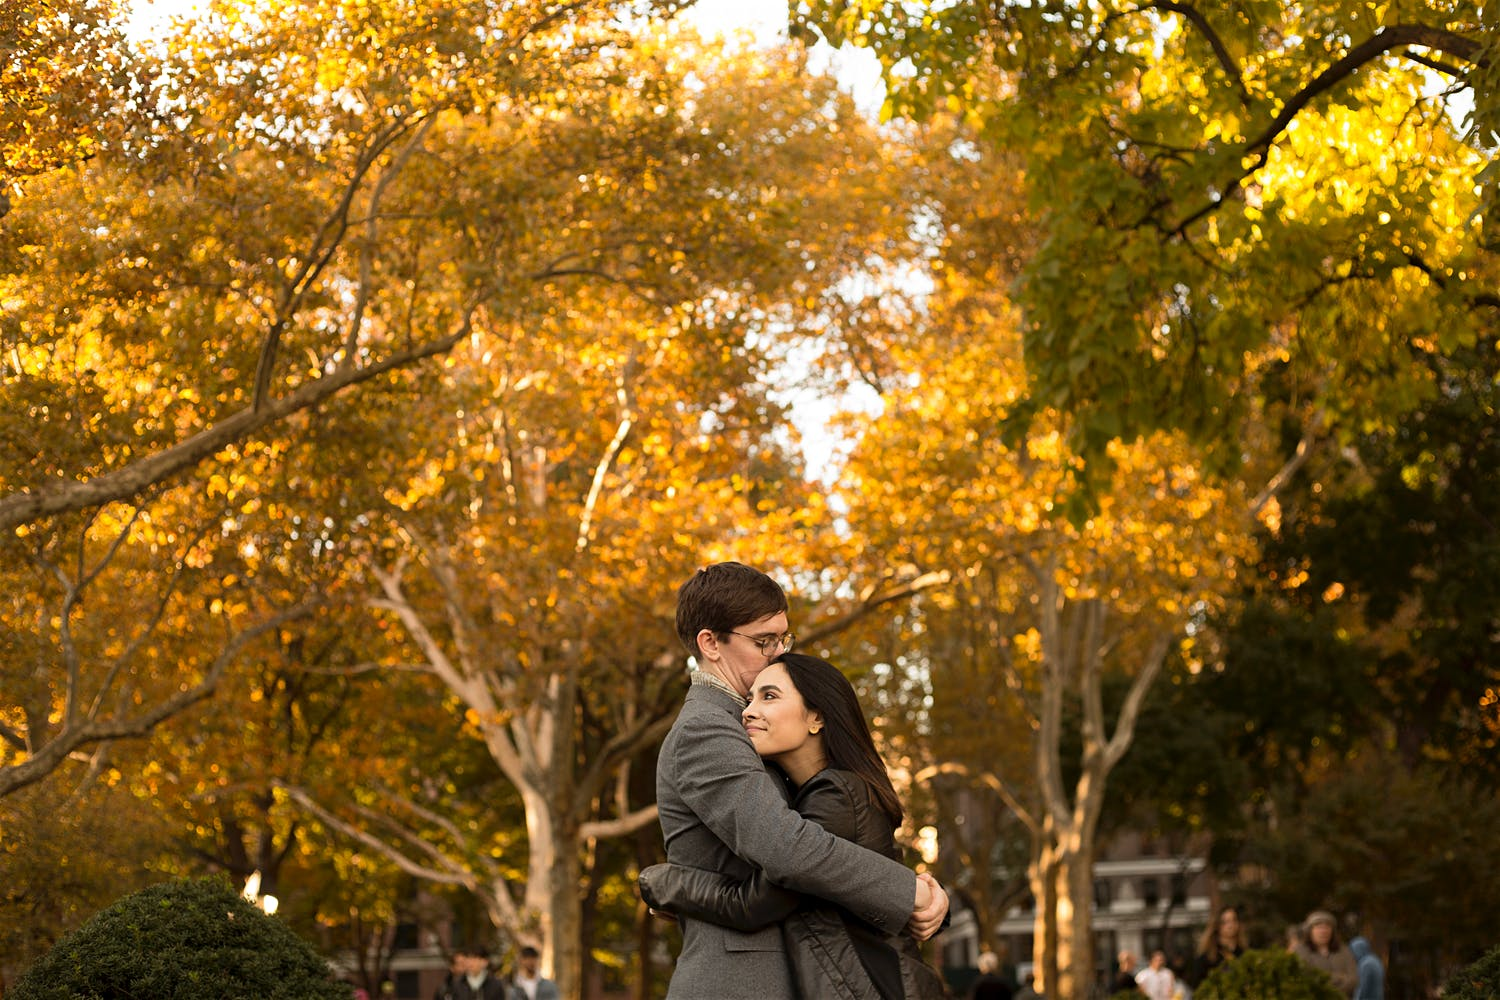 washington square park couple walking engagement posing ideas